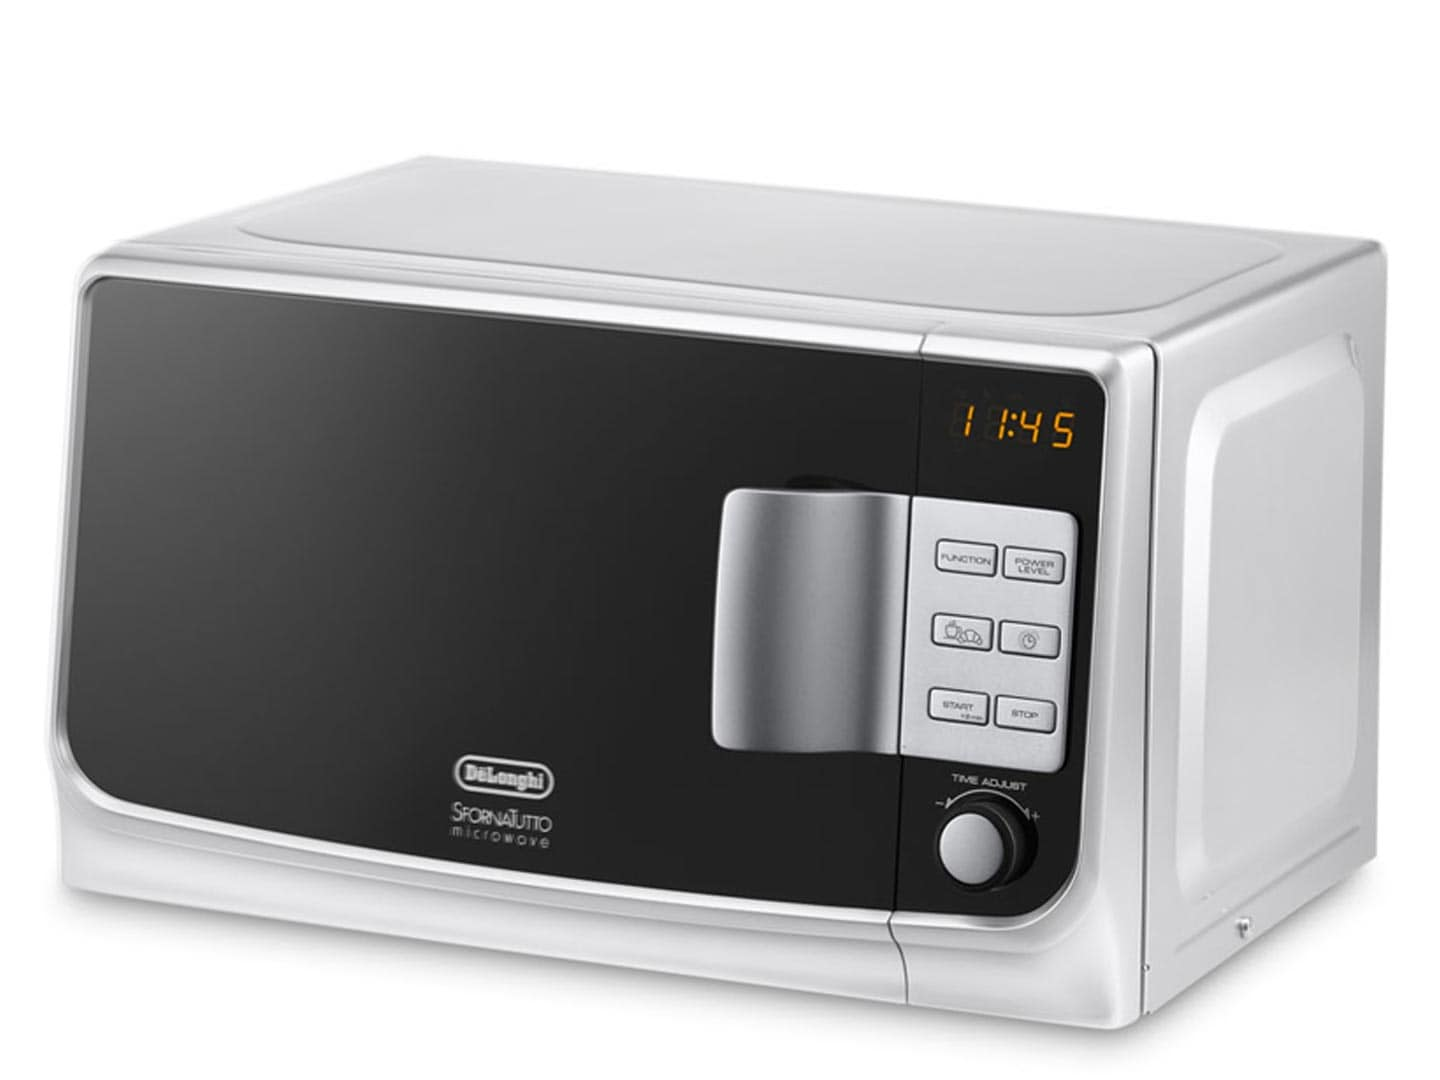 Delonghi Microwave Oven User Manual Bestmicrowave